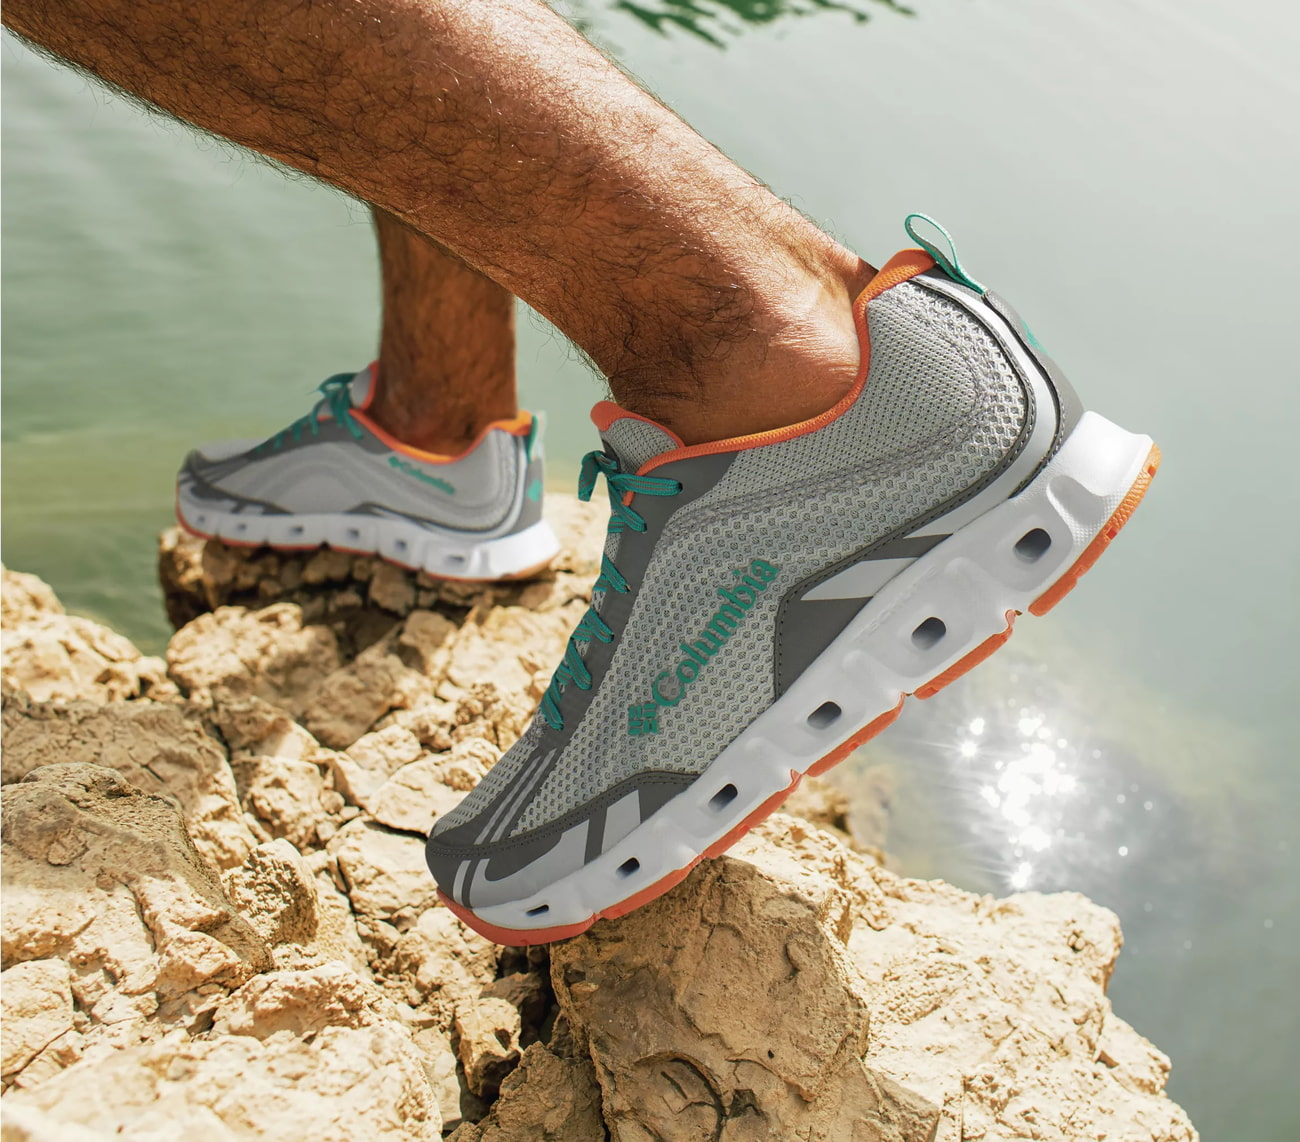 Best Water Shoes for Travel